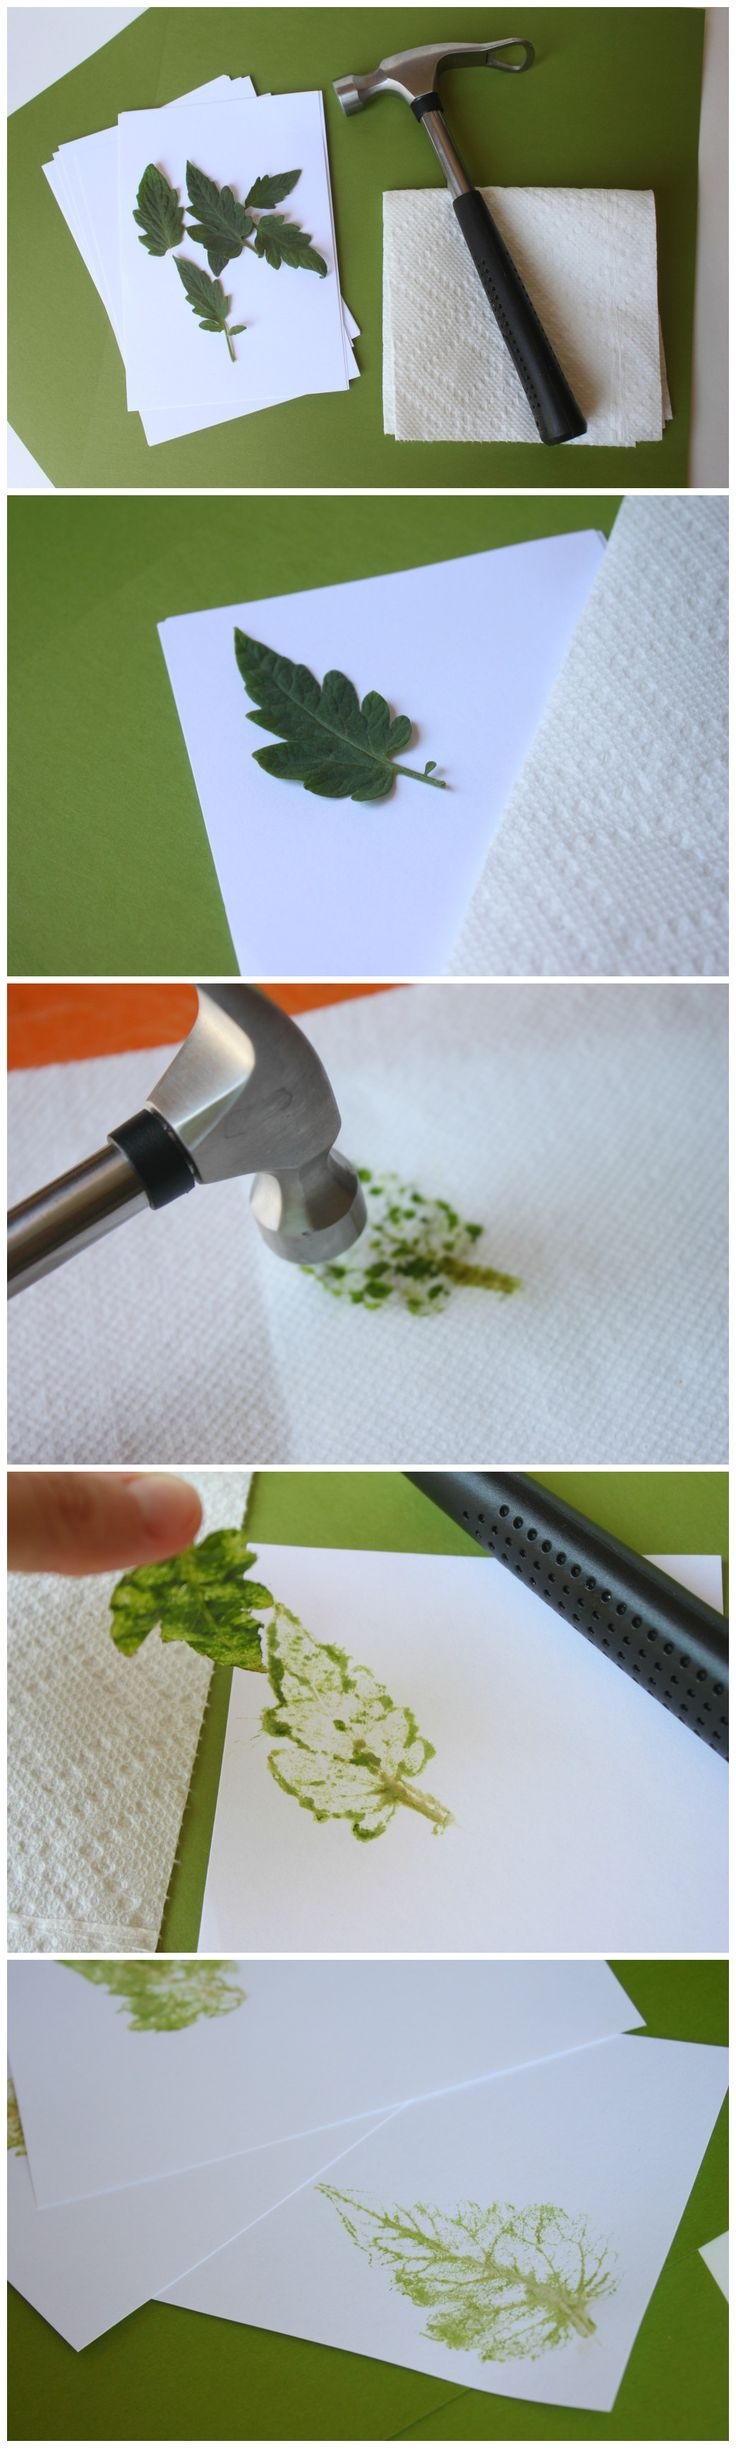 cool way to do leaf printing